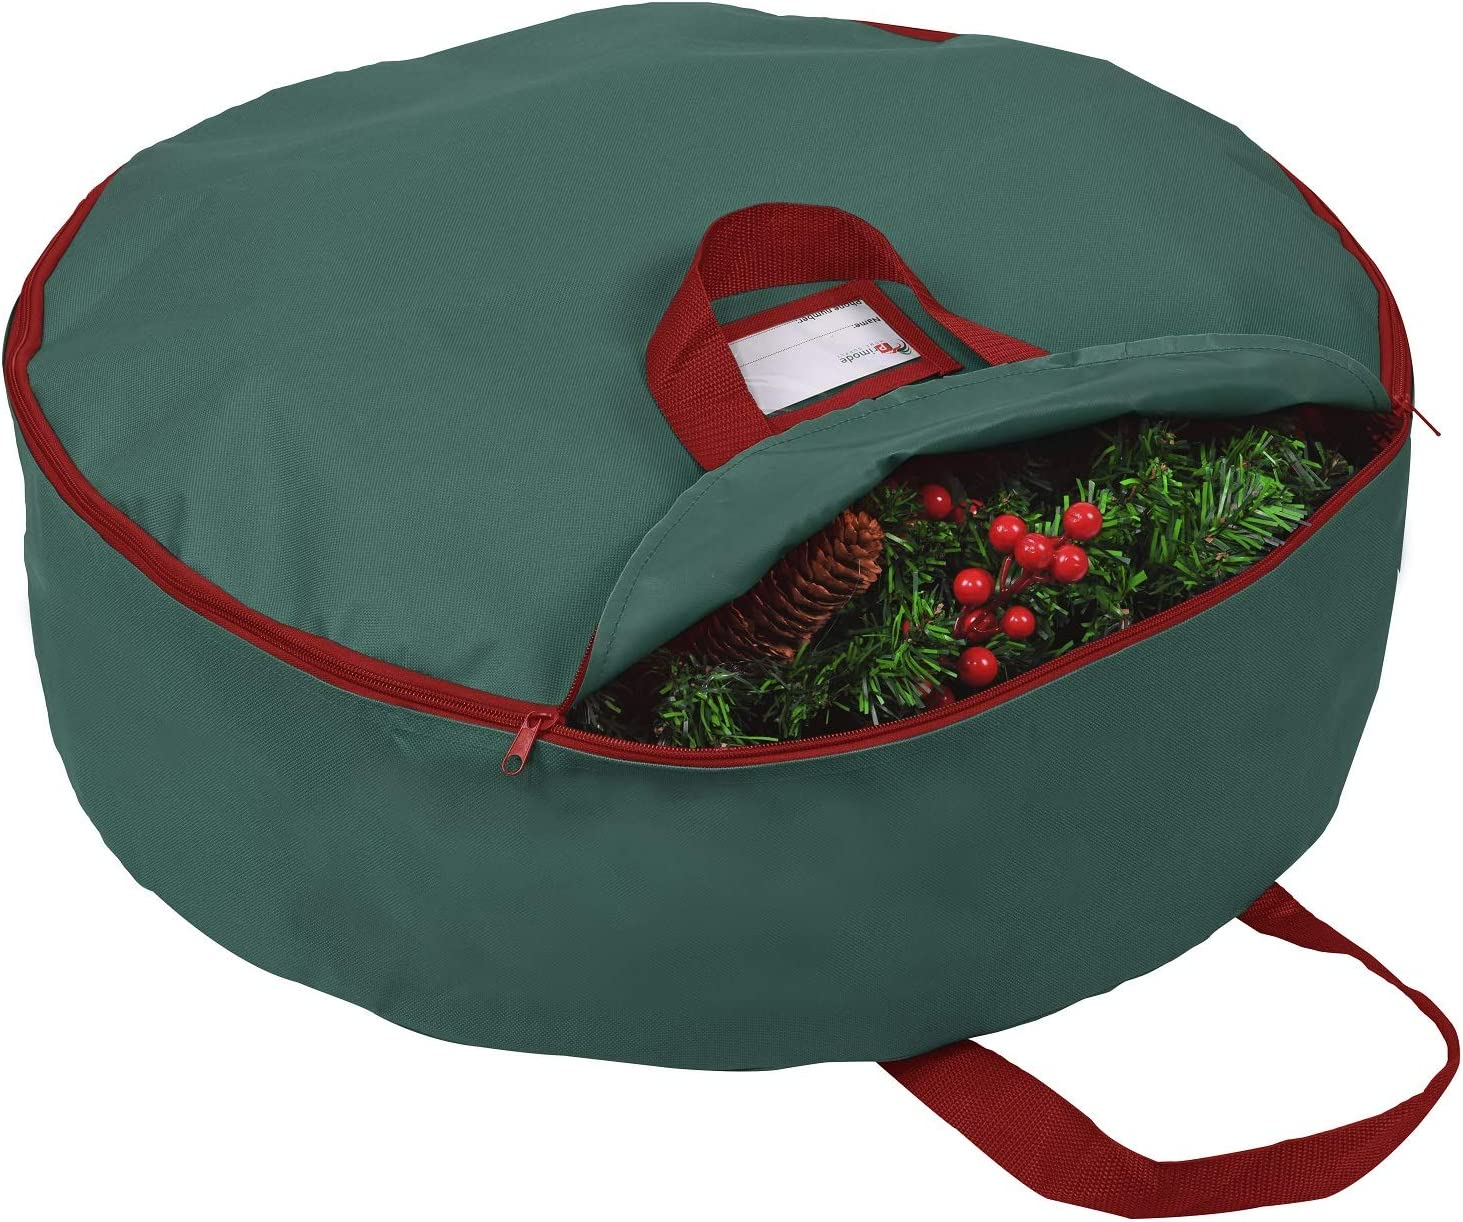 """Primode Christmas Wreath Storage Bag 30"""" with Handles, Container for Holiday Garland Wreaths, Constructed of Durable 600D Oxford Polyester Material (Green)"""